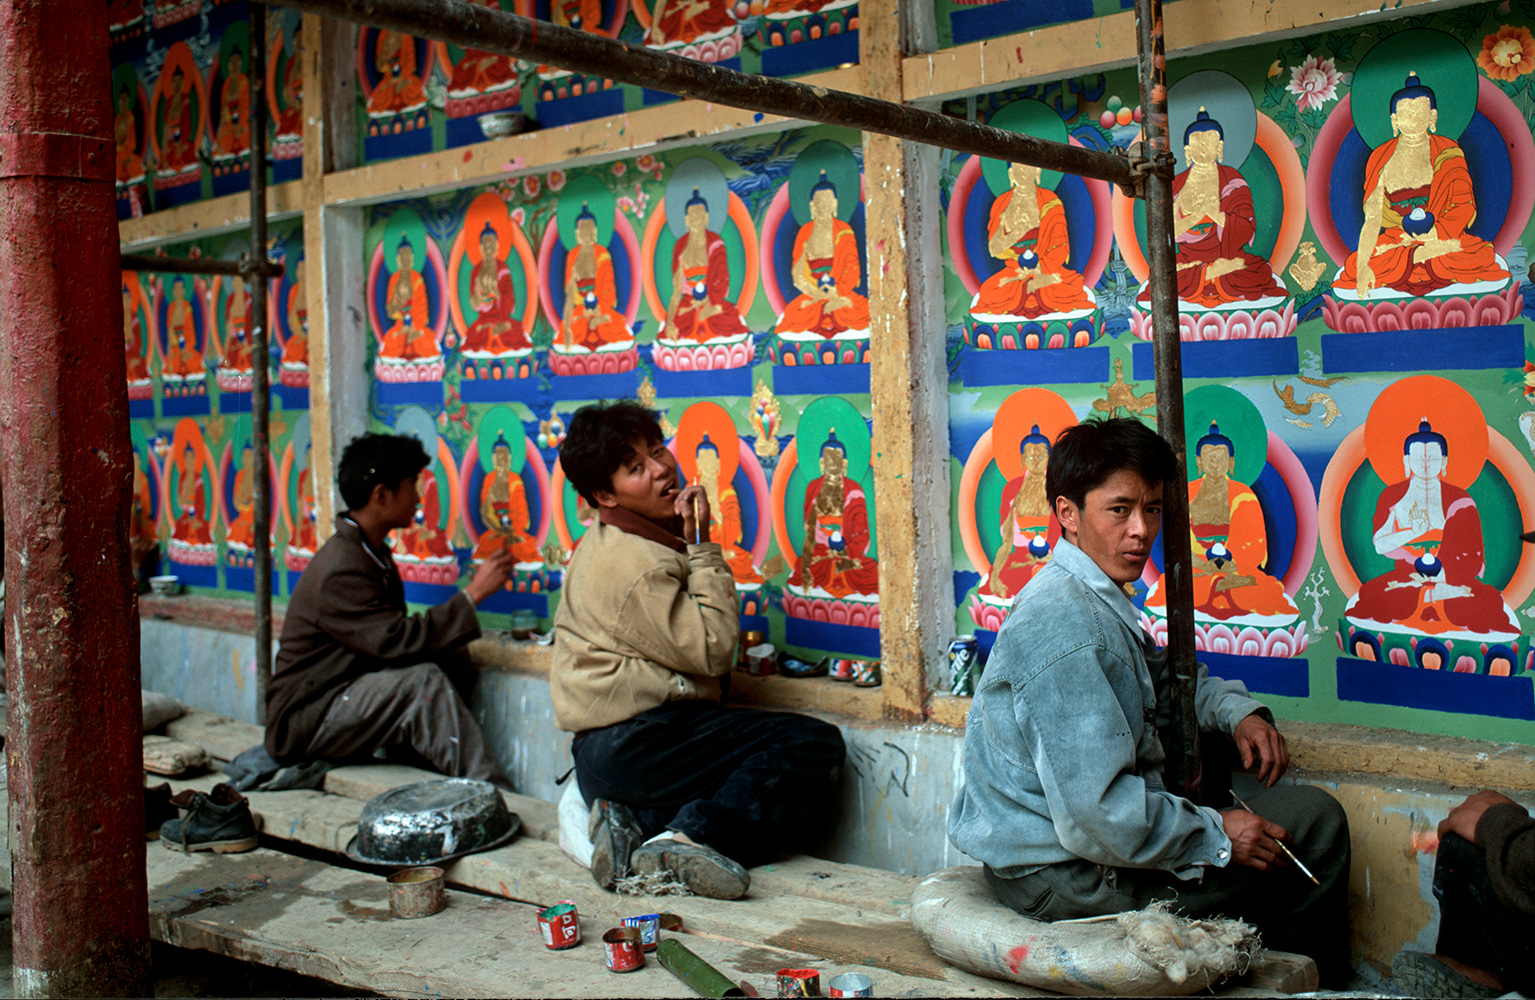 Artists working on a mural during renovations at the seat of the Panchen Lama in Shigatse (Xigatse)Bronica ETRSi, 75mm, Fuji Velvia